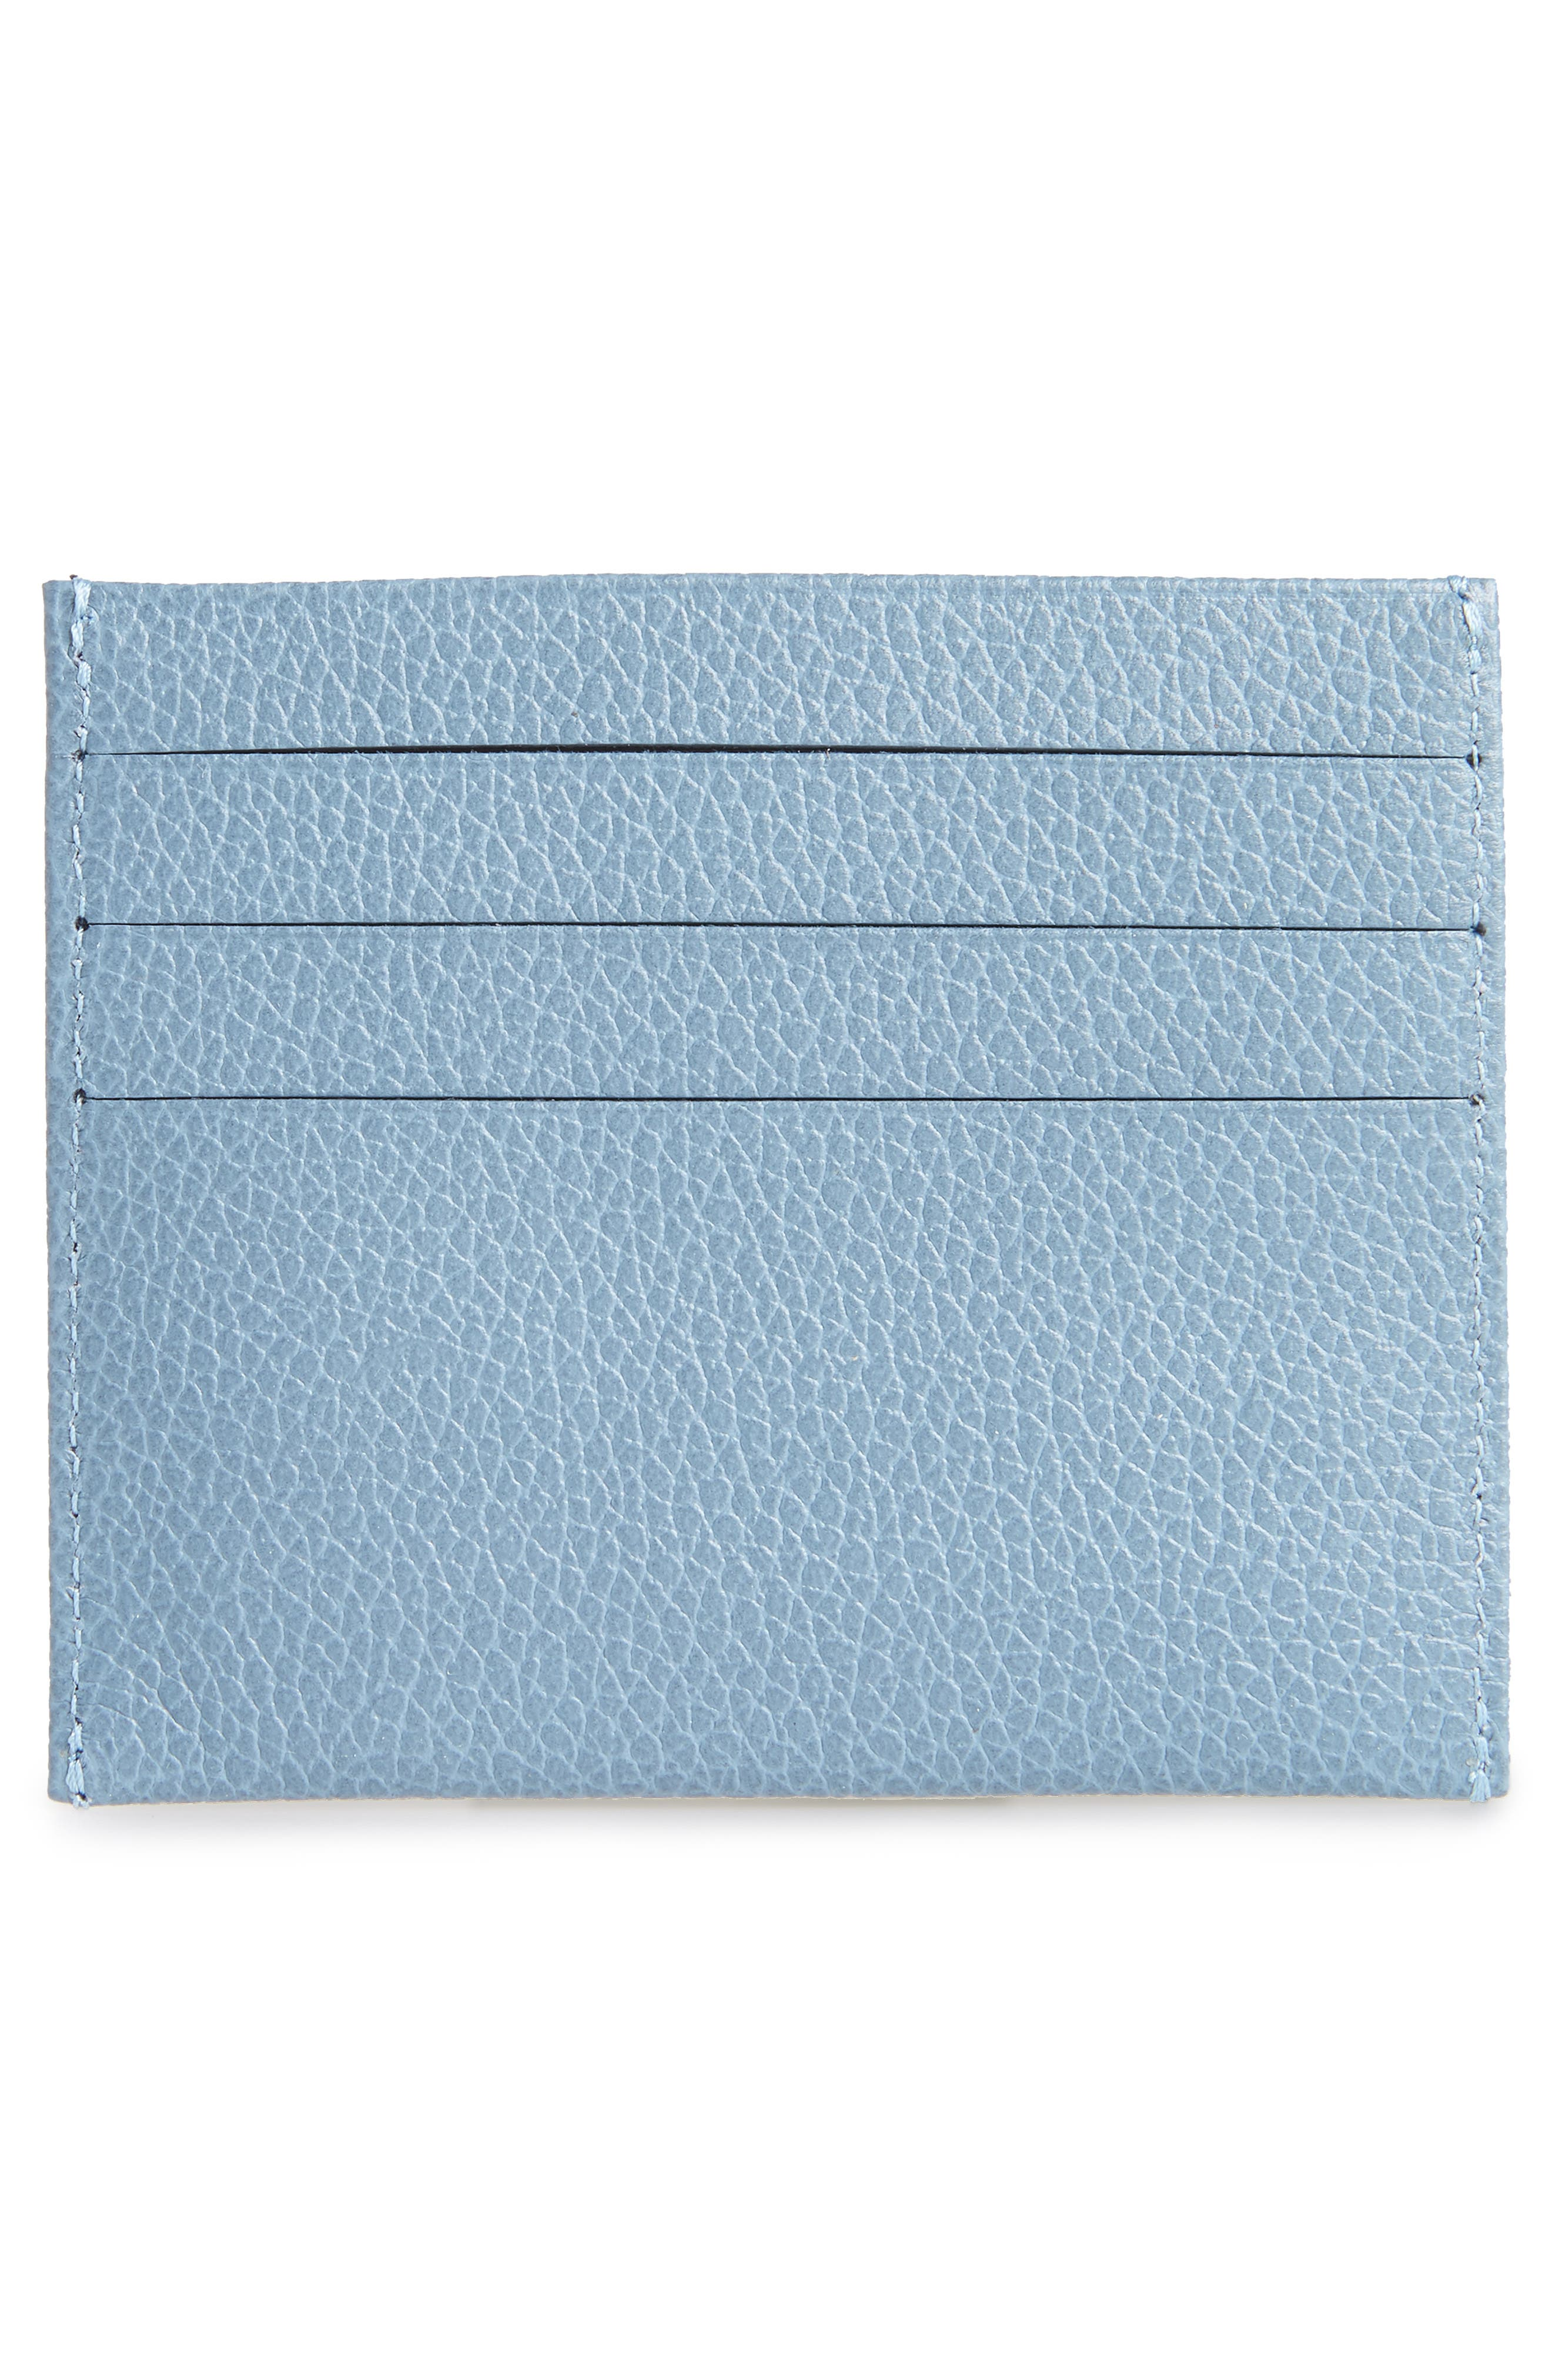 'Le Foulonne' Pebbled Leather Card Holder,                             Alternate thumbnail 2, color,                             NORDIC